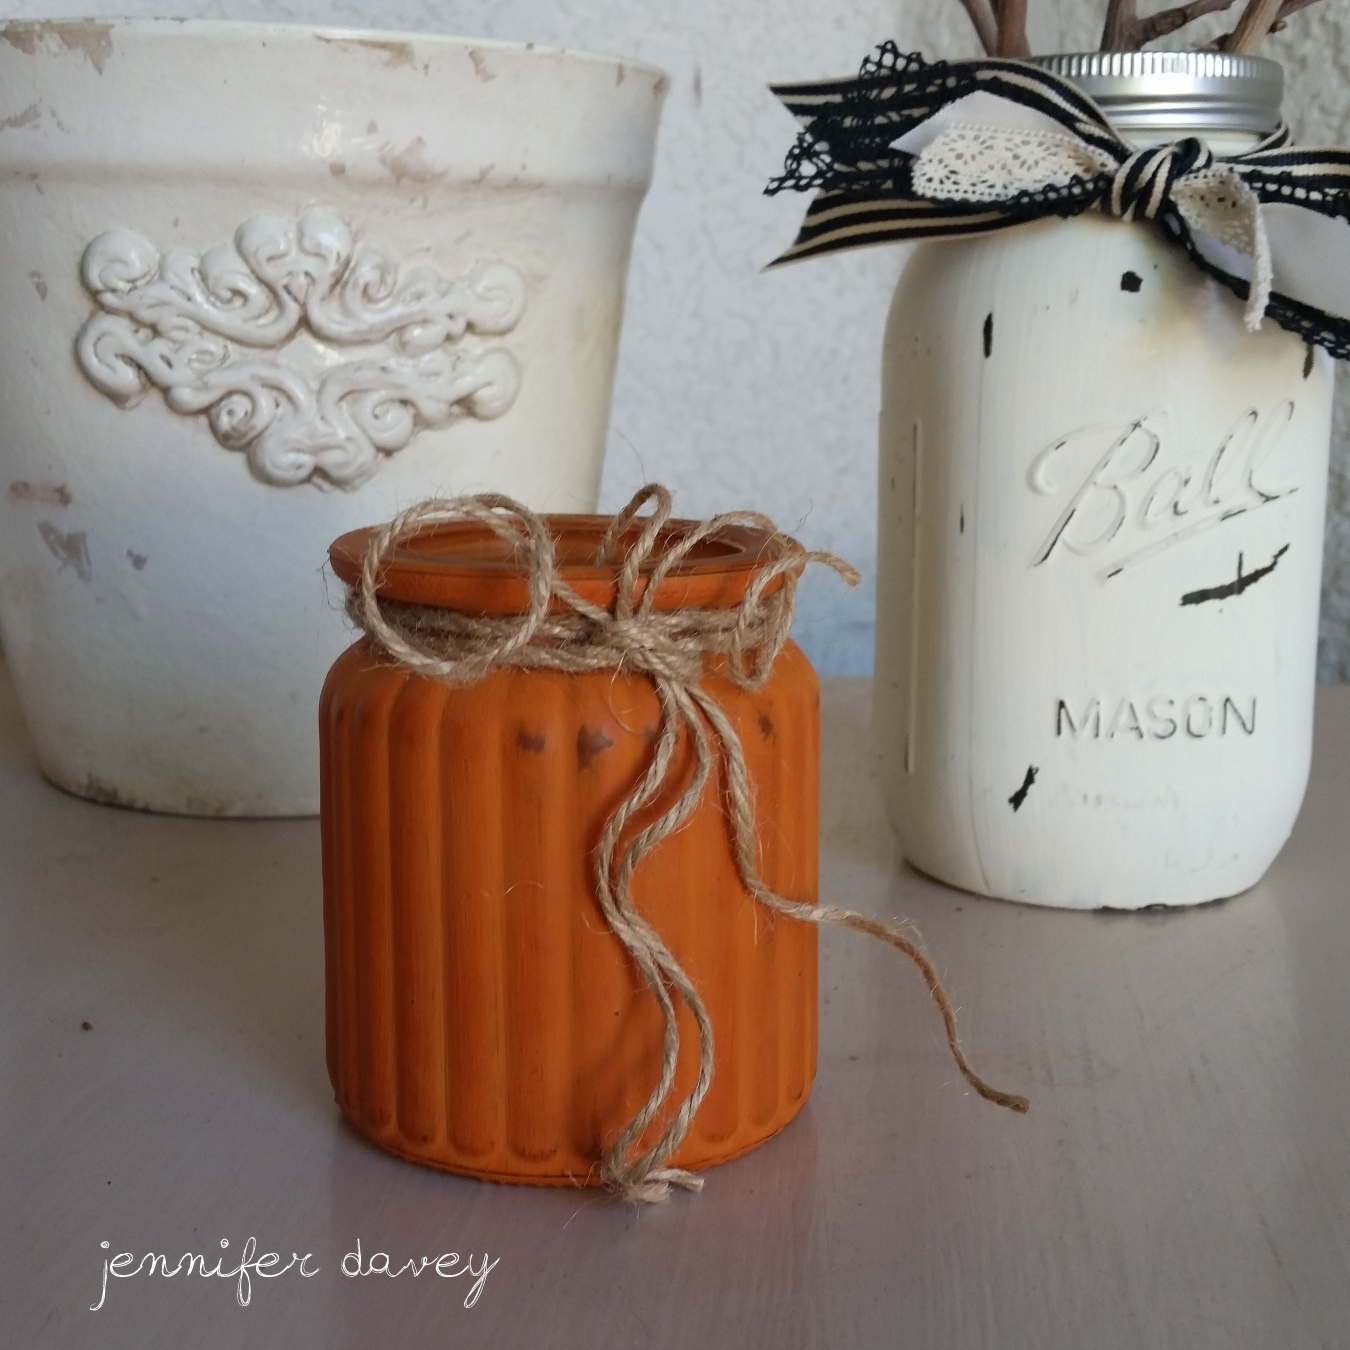 """Chalky Pumpkins with etchall®"" by Jennifer Davey"